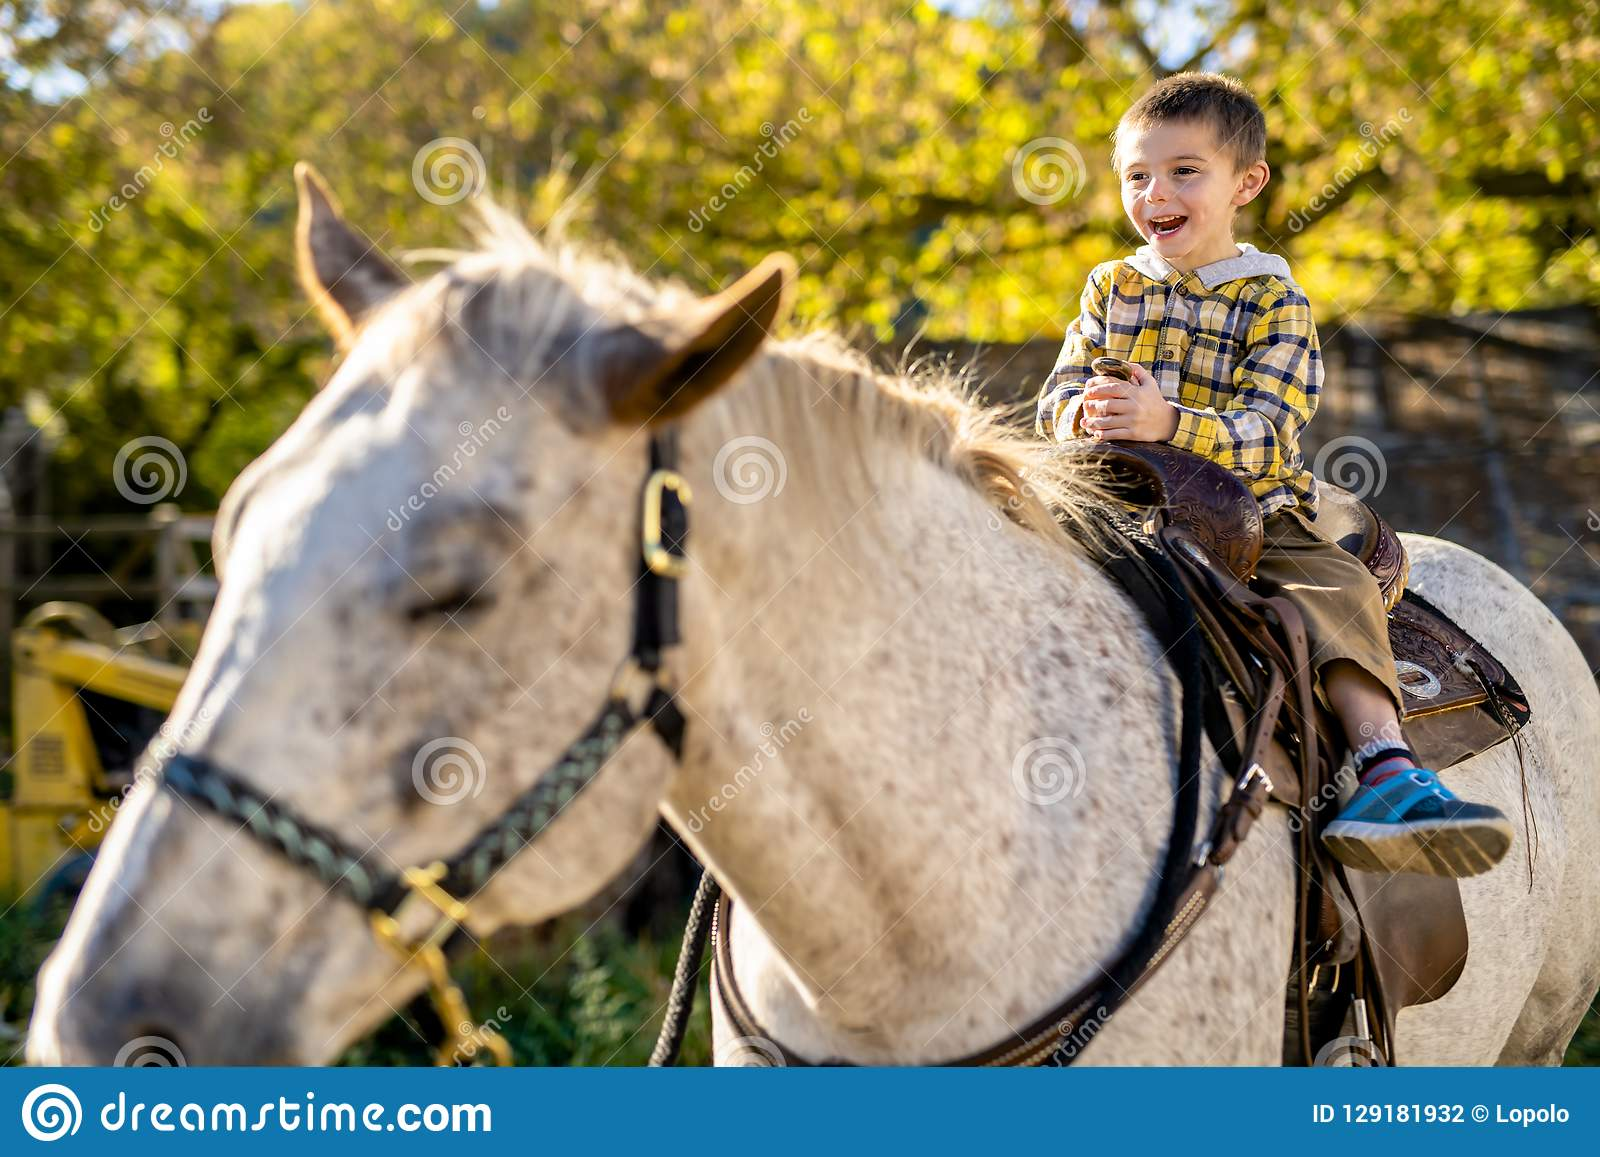 In A Beautiful Autumn Season Of A Young Boy And Horse Stock Photo Image Of Farm Autumn 129181932